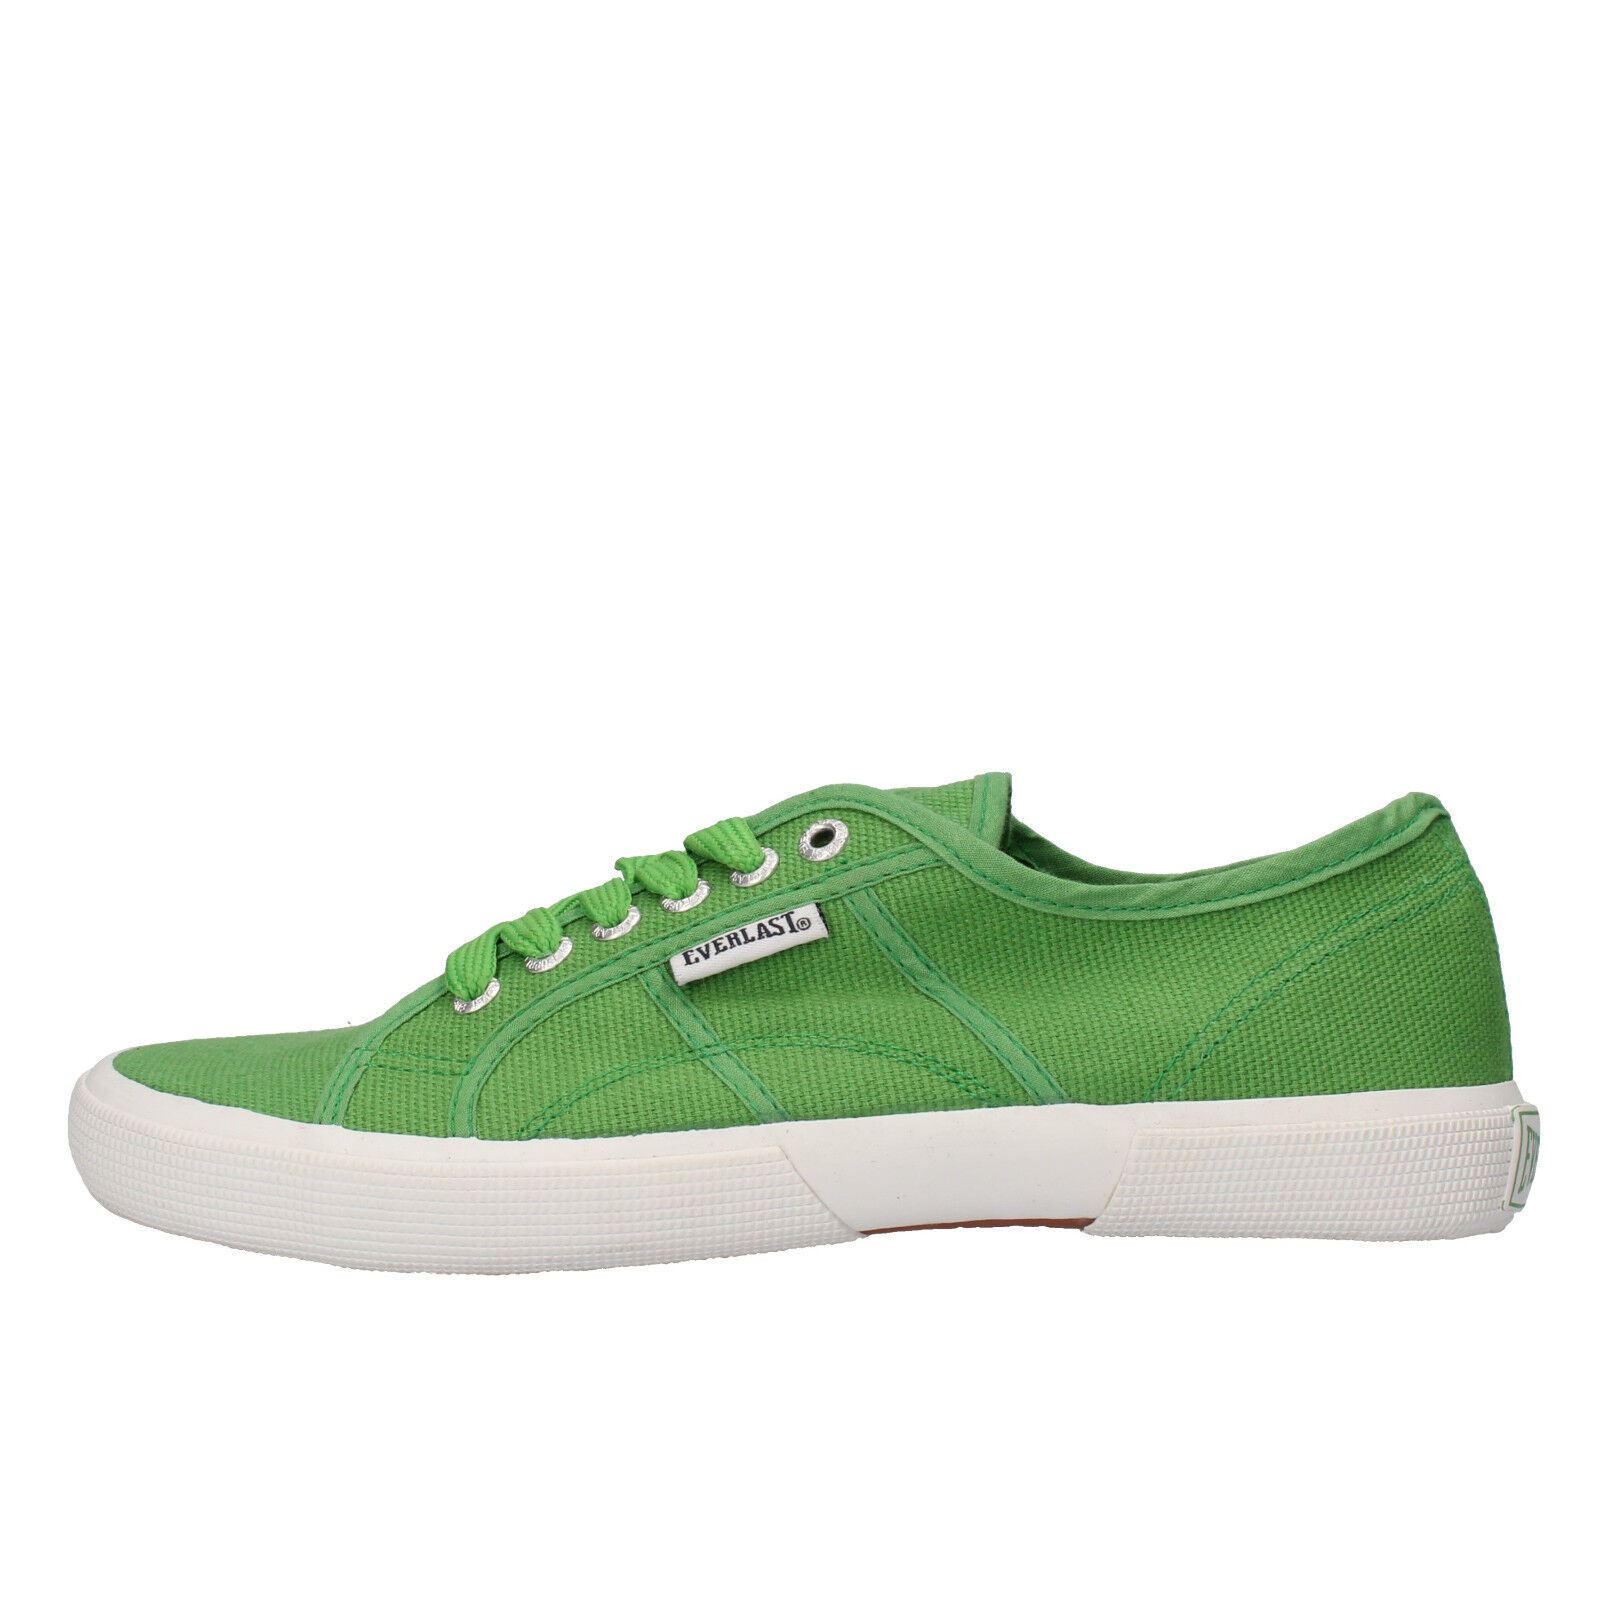 aae0e7eaba9637 Men s shoes EVERLAST 5 green canvas AF717-B () sneakers nfydhj1627-Casual  Shoes